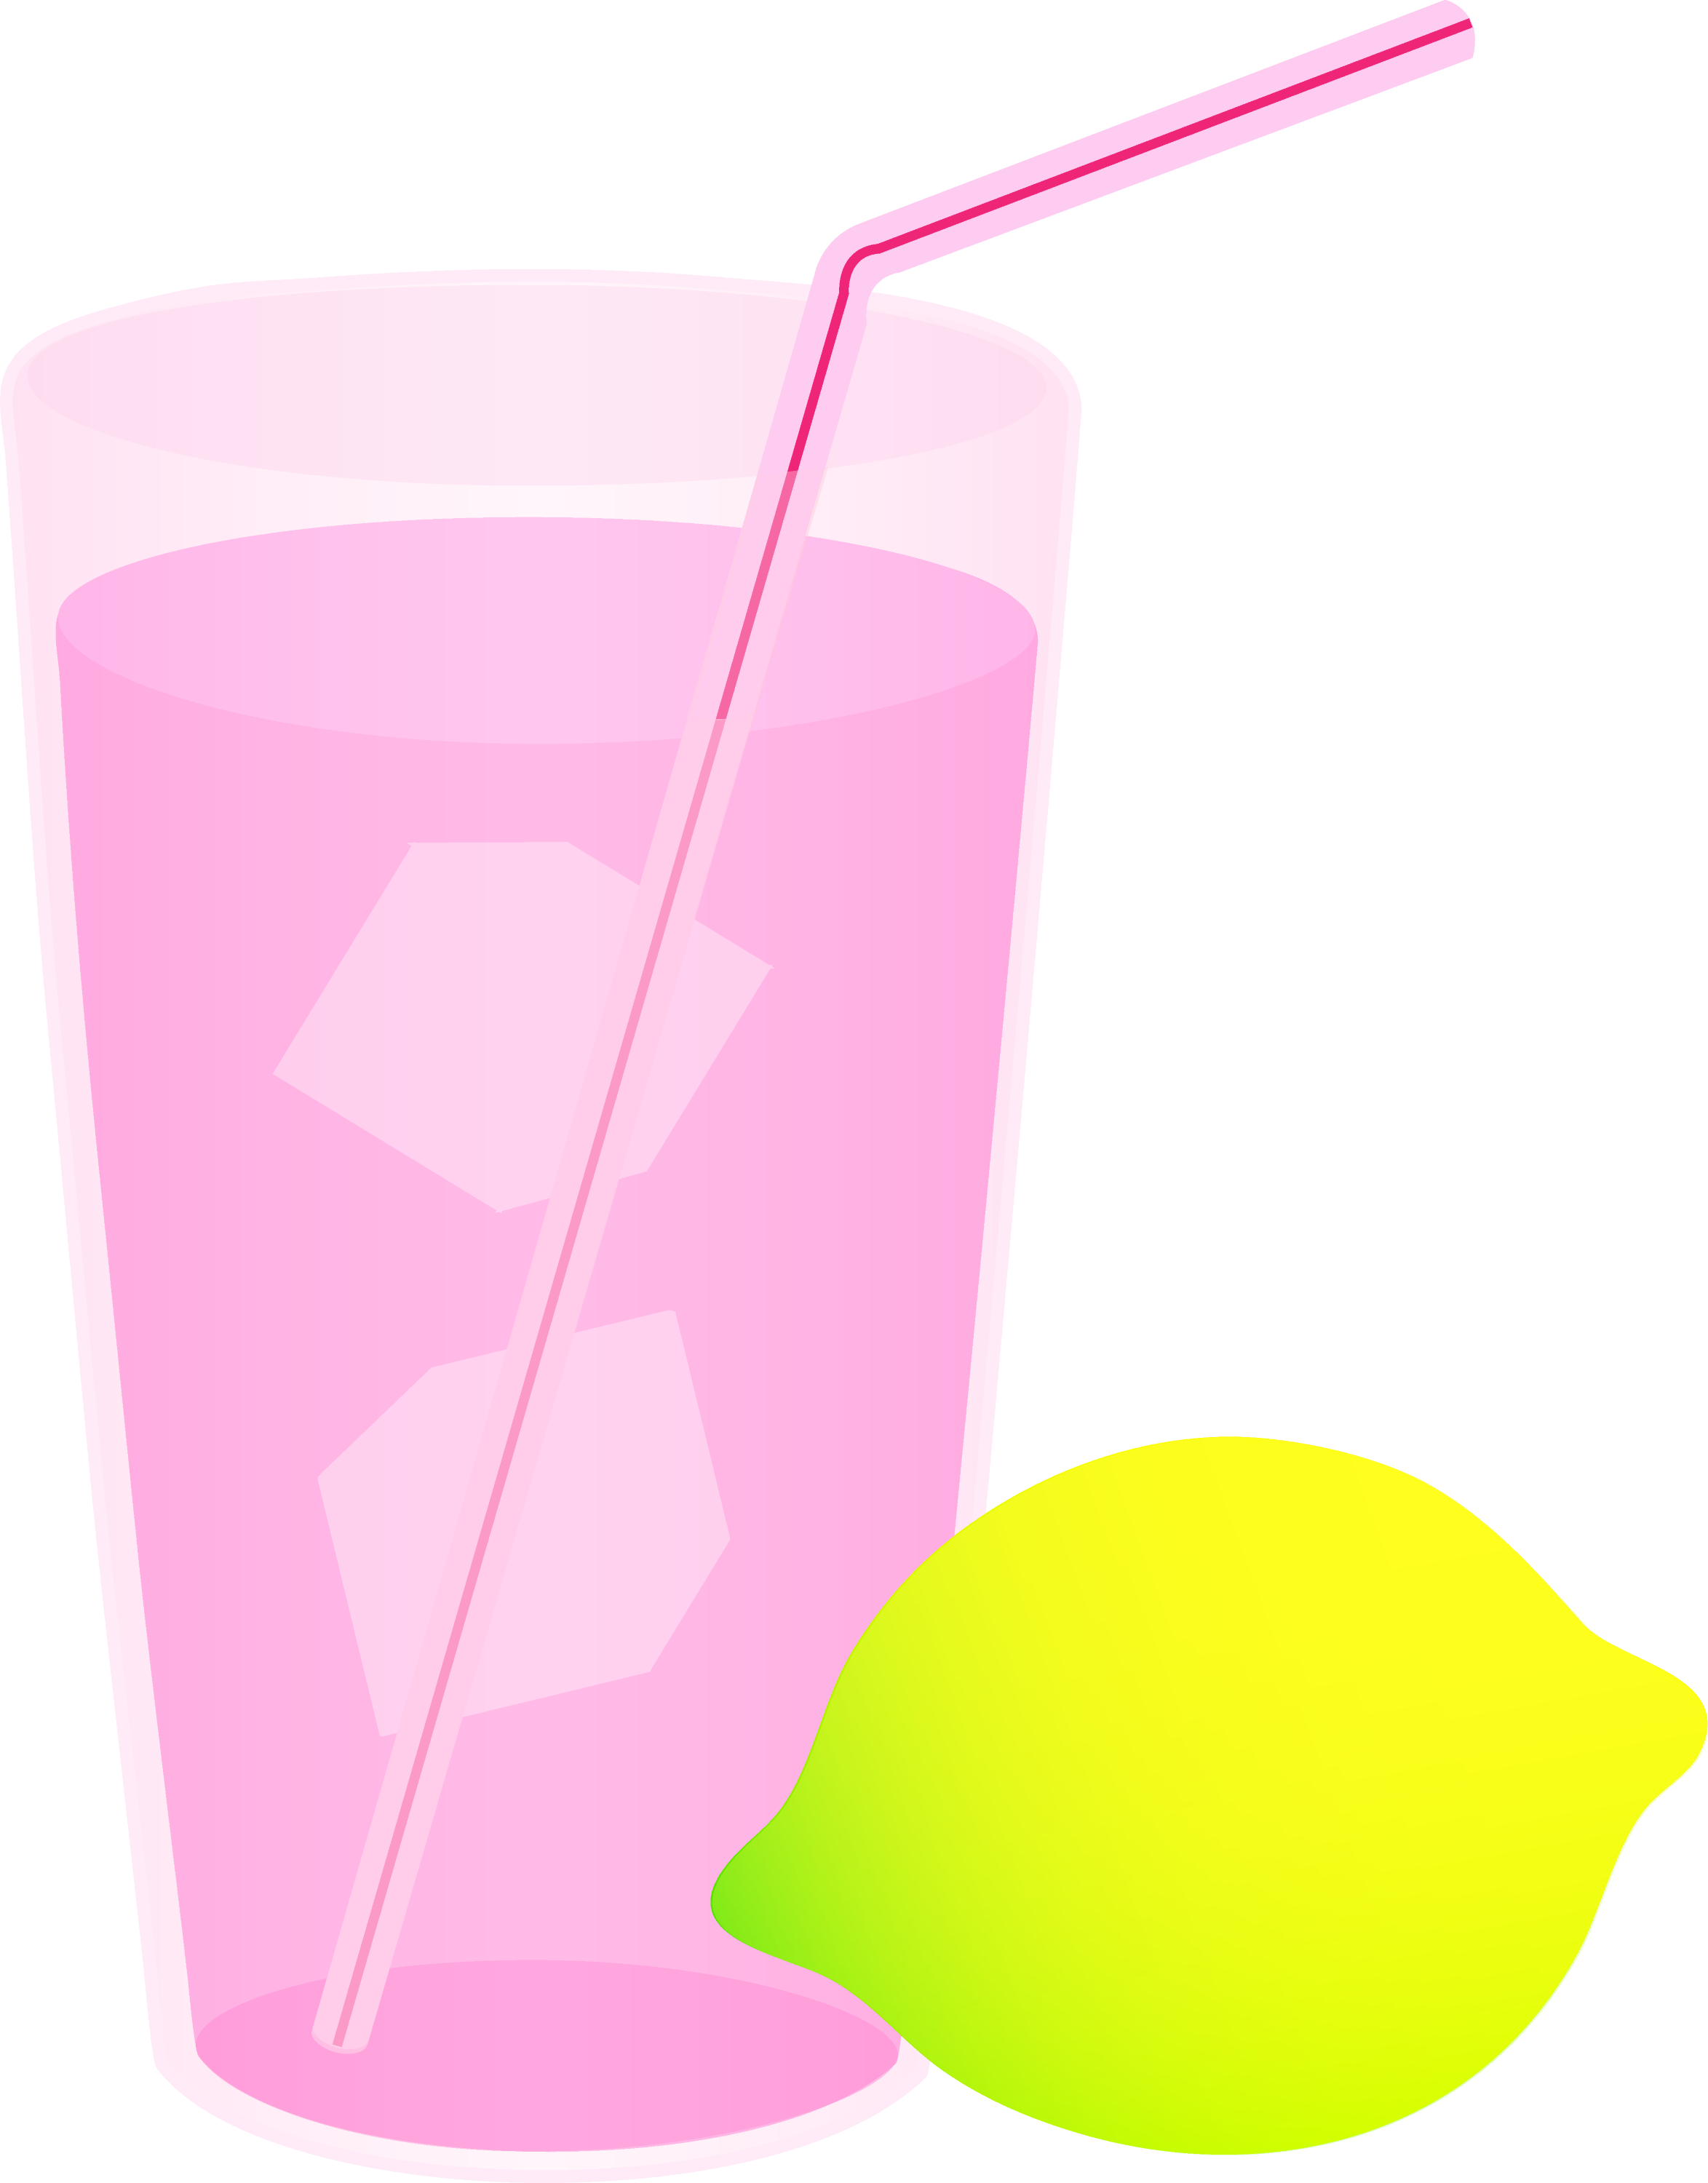 Cartoon Pink Lemonade Images & Pictures - Becuo